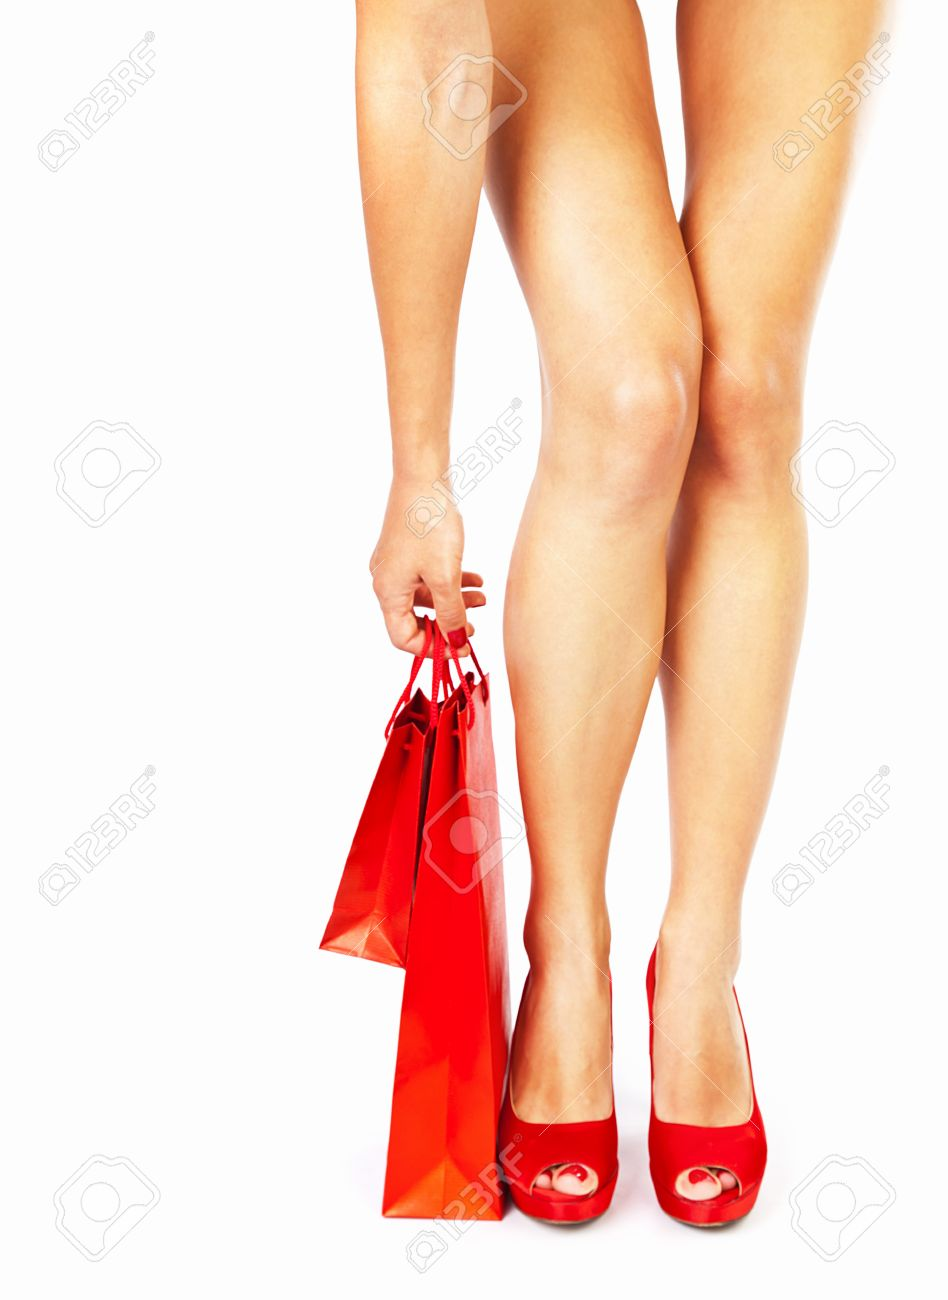 Beautiful Female Legs With Red High Heels Holding Shopping Bags